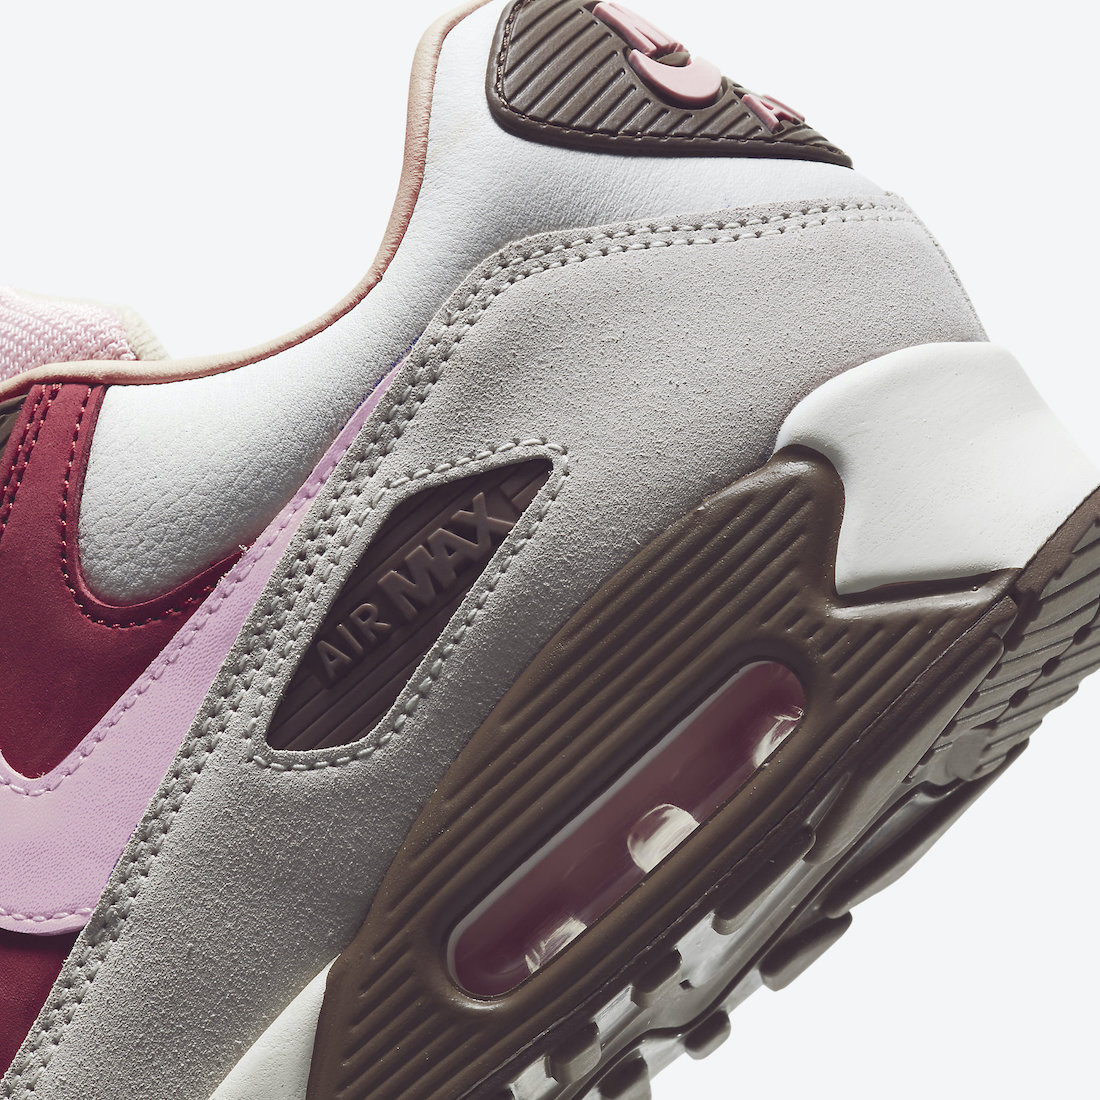 Nike-Air-Max-90-Bacon-CU1816-100-Release-Date-Price-7